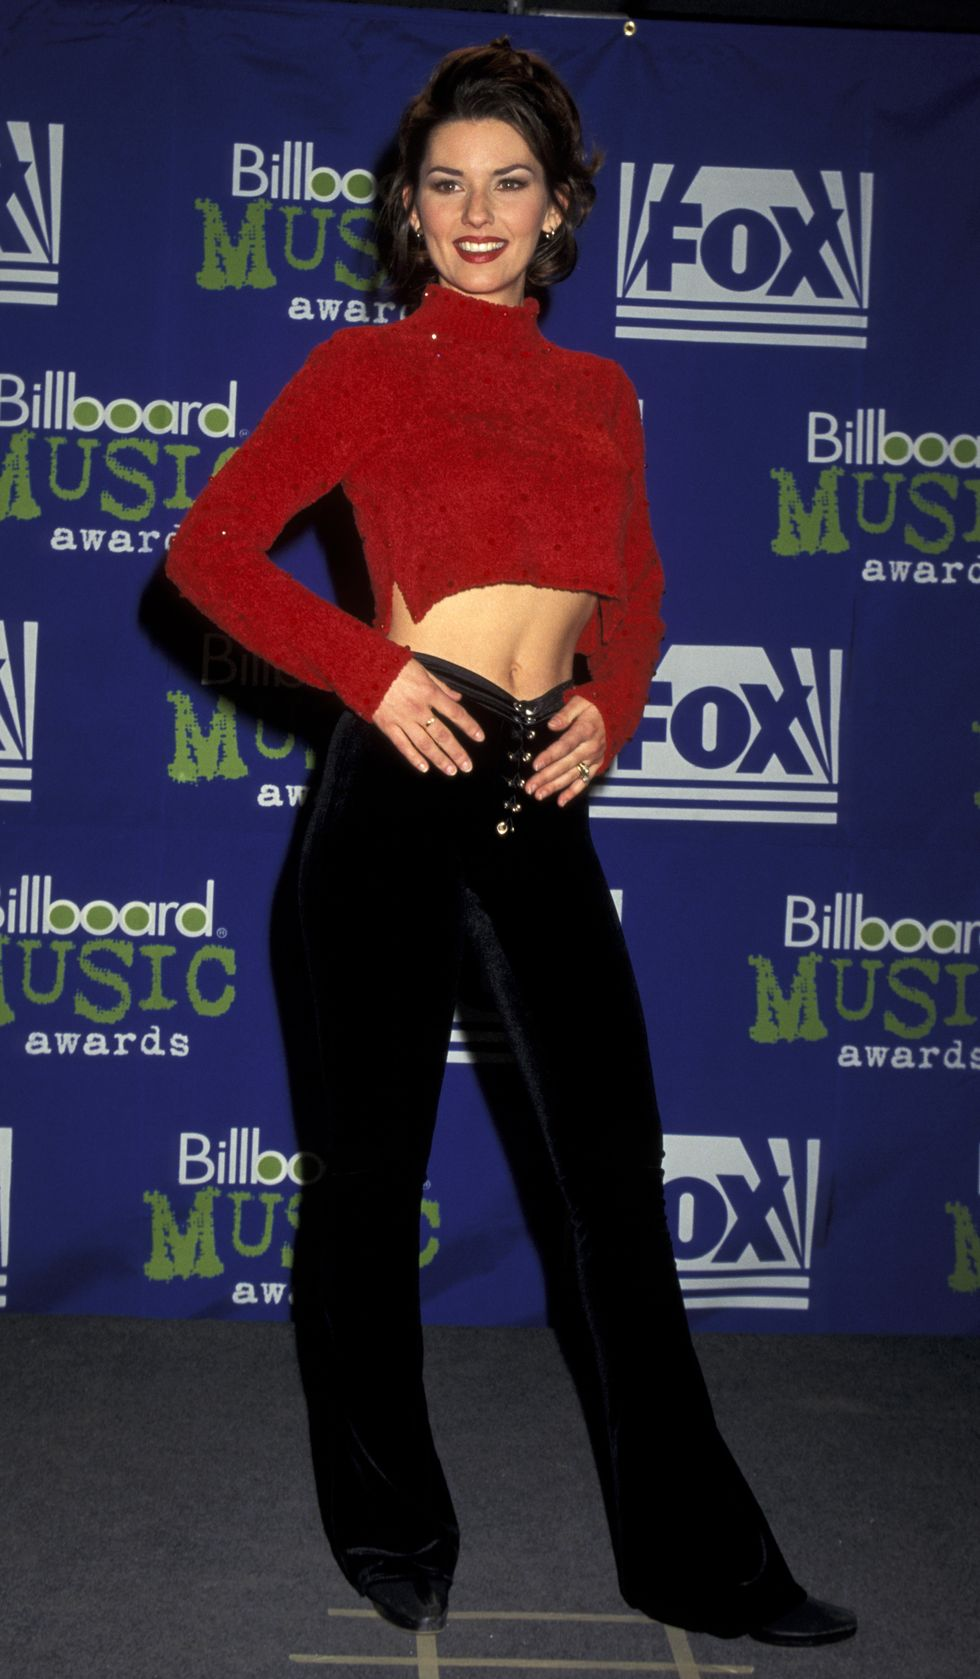 Shania Twain (Photo by Ron Galella/WireImage)